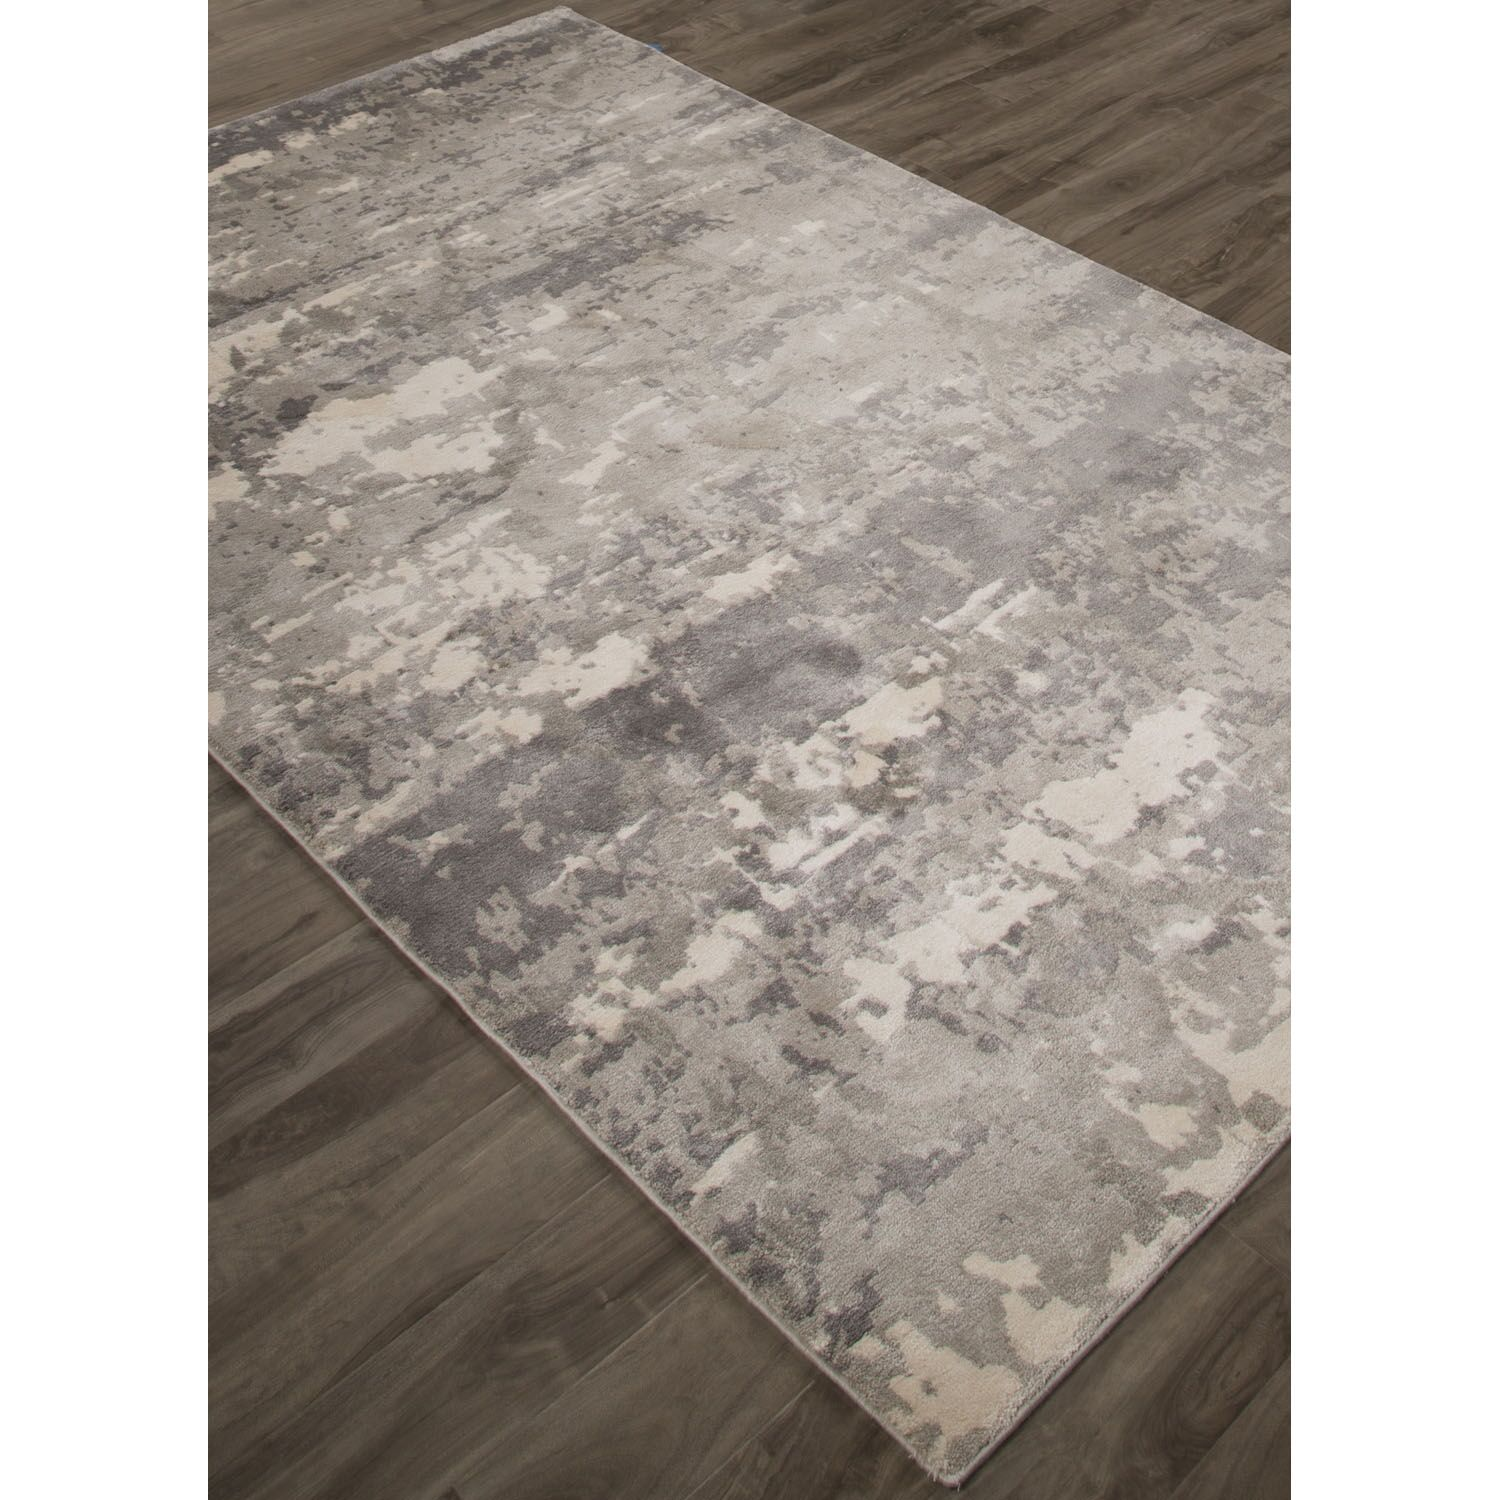 Ali Ivory/Gray Area Rug Rug Size: Rectangle 7'10